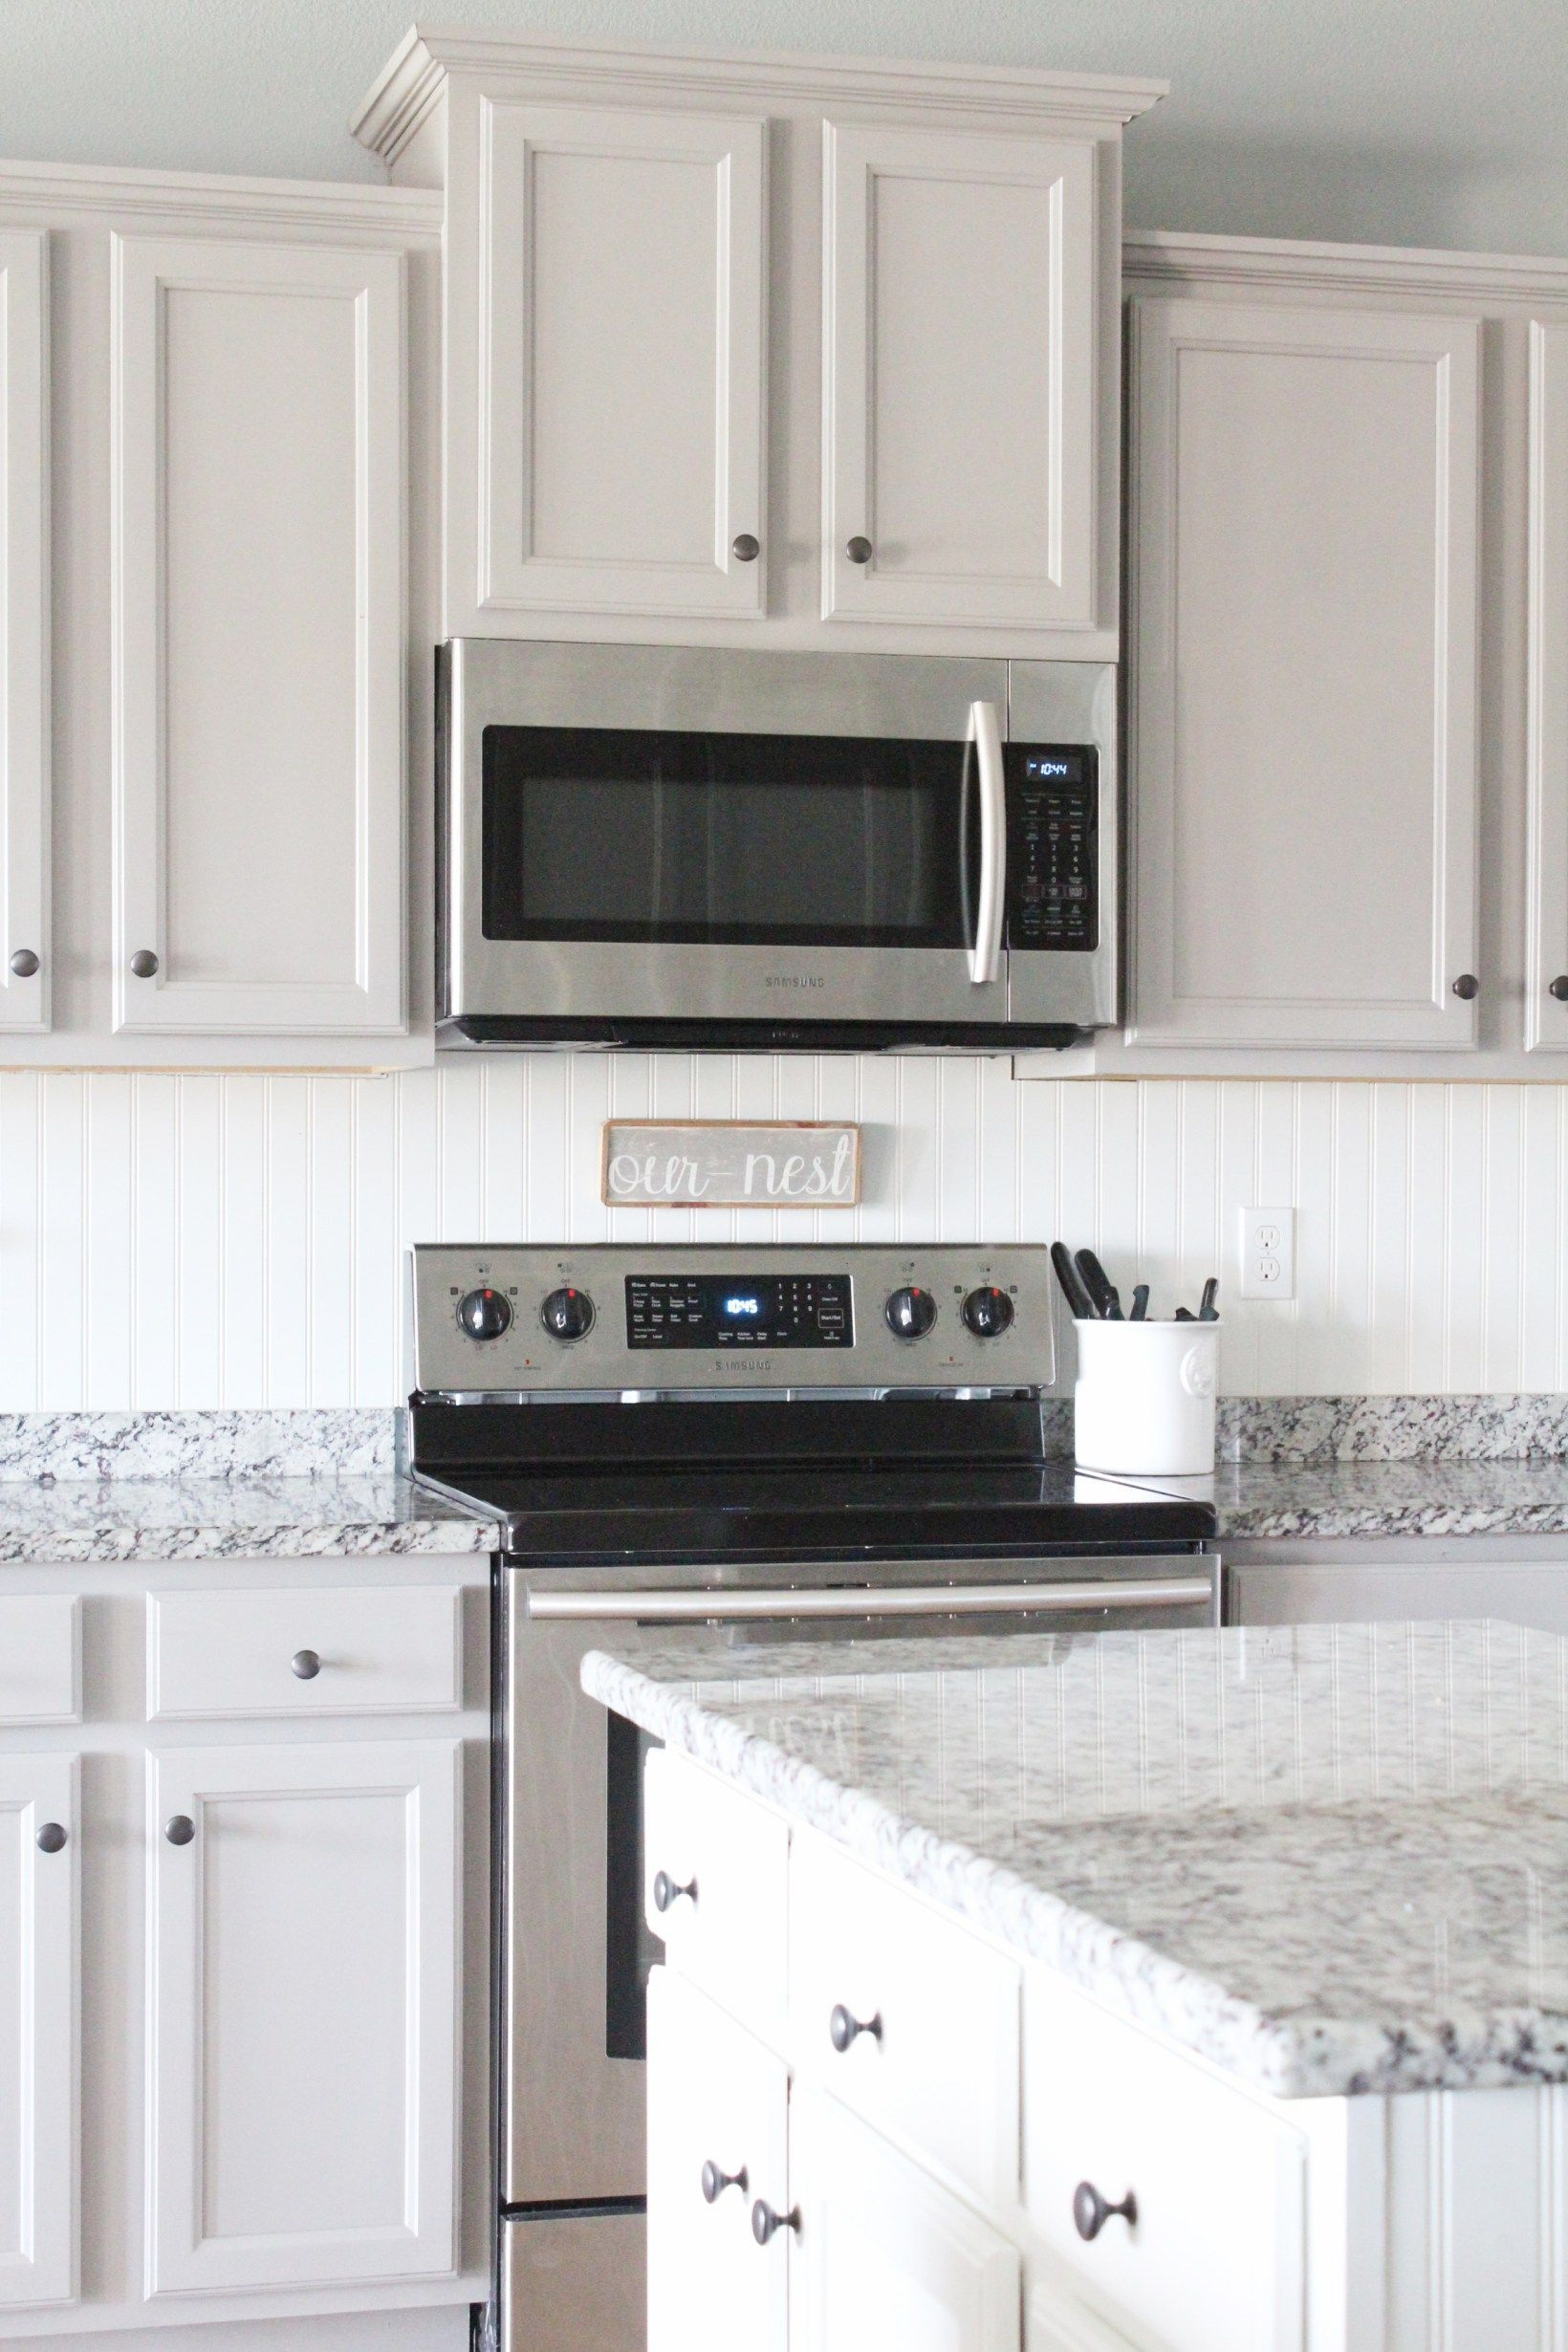 Painting Laminate Cabinets With No Prep Work Part 2 In 2020 Laminate Cabinets Laminate Kitchen Cabinets Cheap Kitchen Cabinets